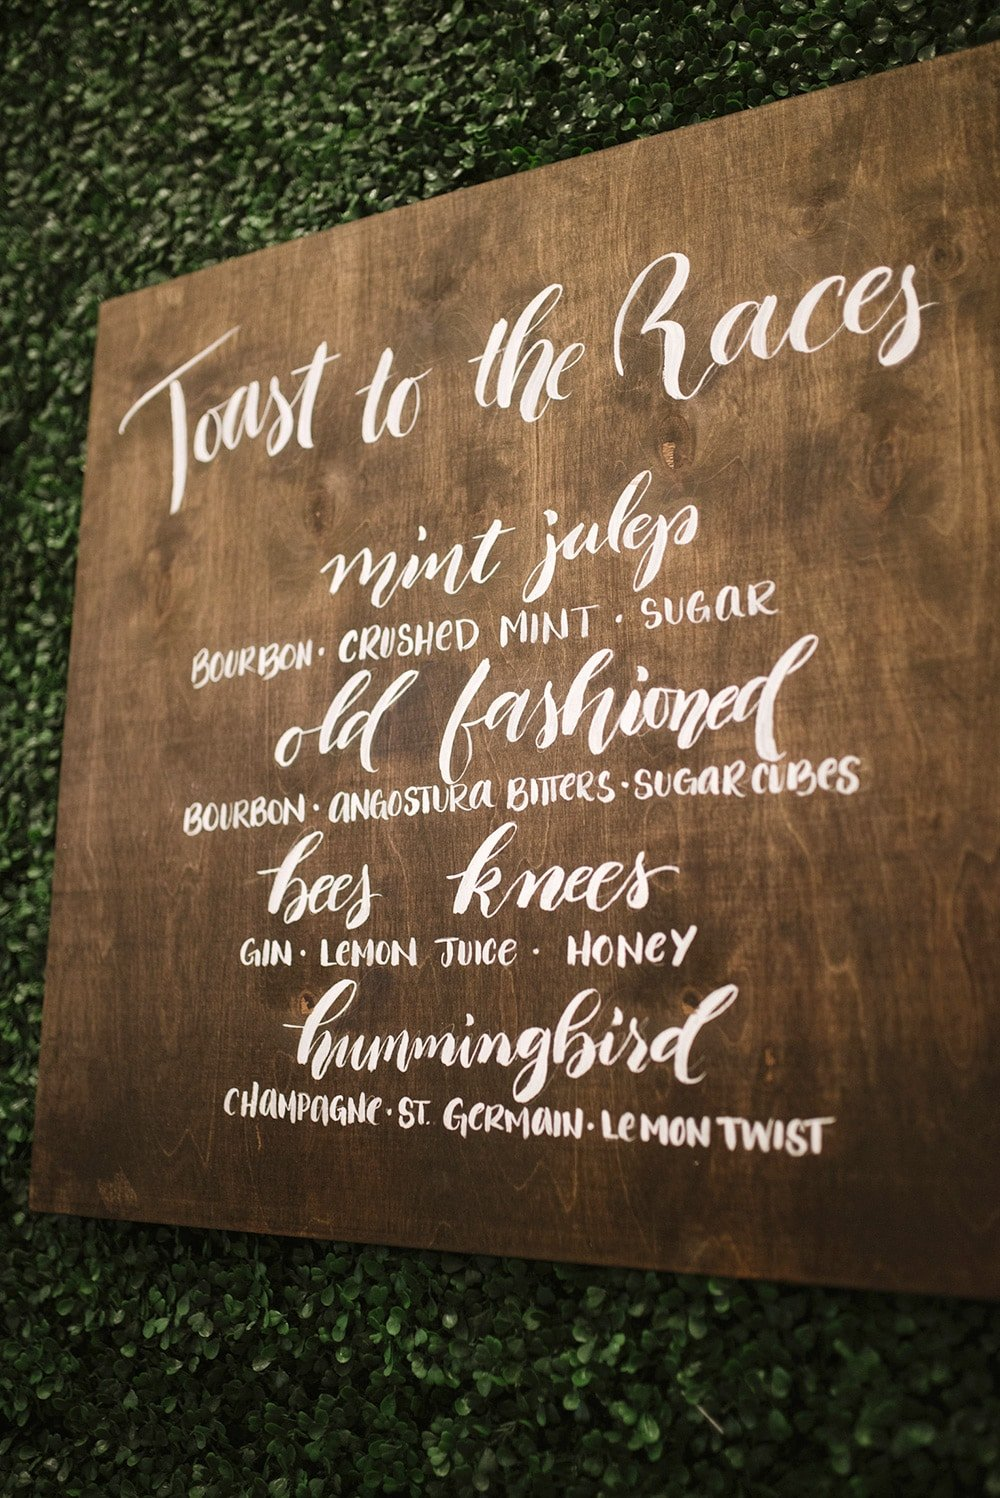 Kentucky Derby Themed Party Menu